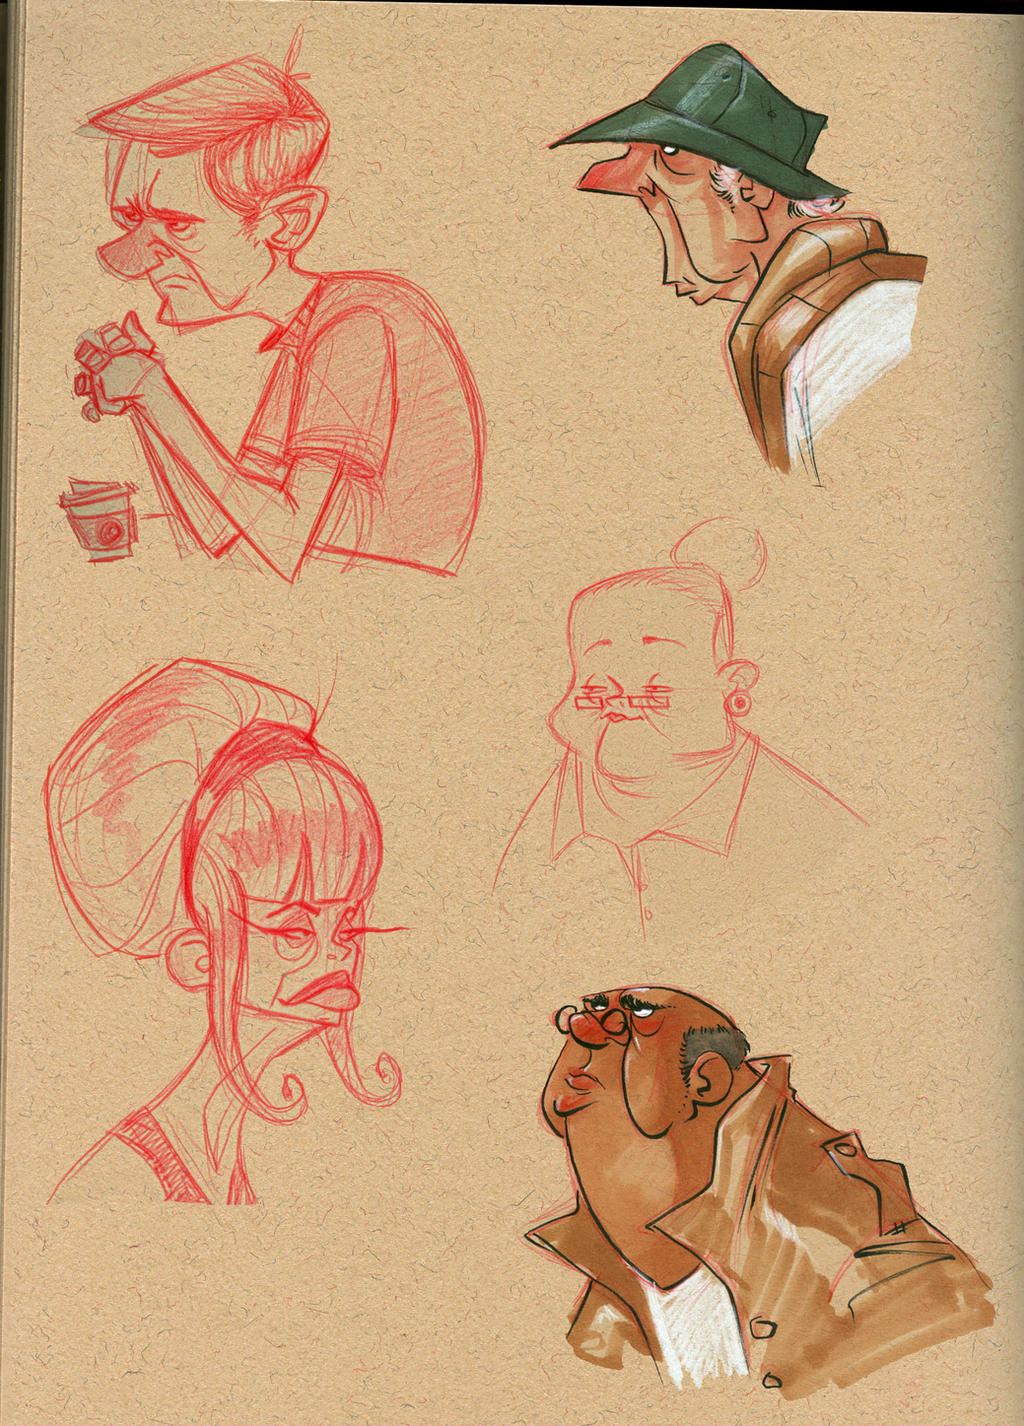 cafe sketches by Jtown67